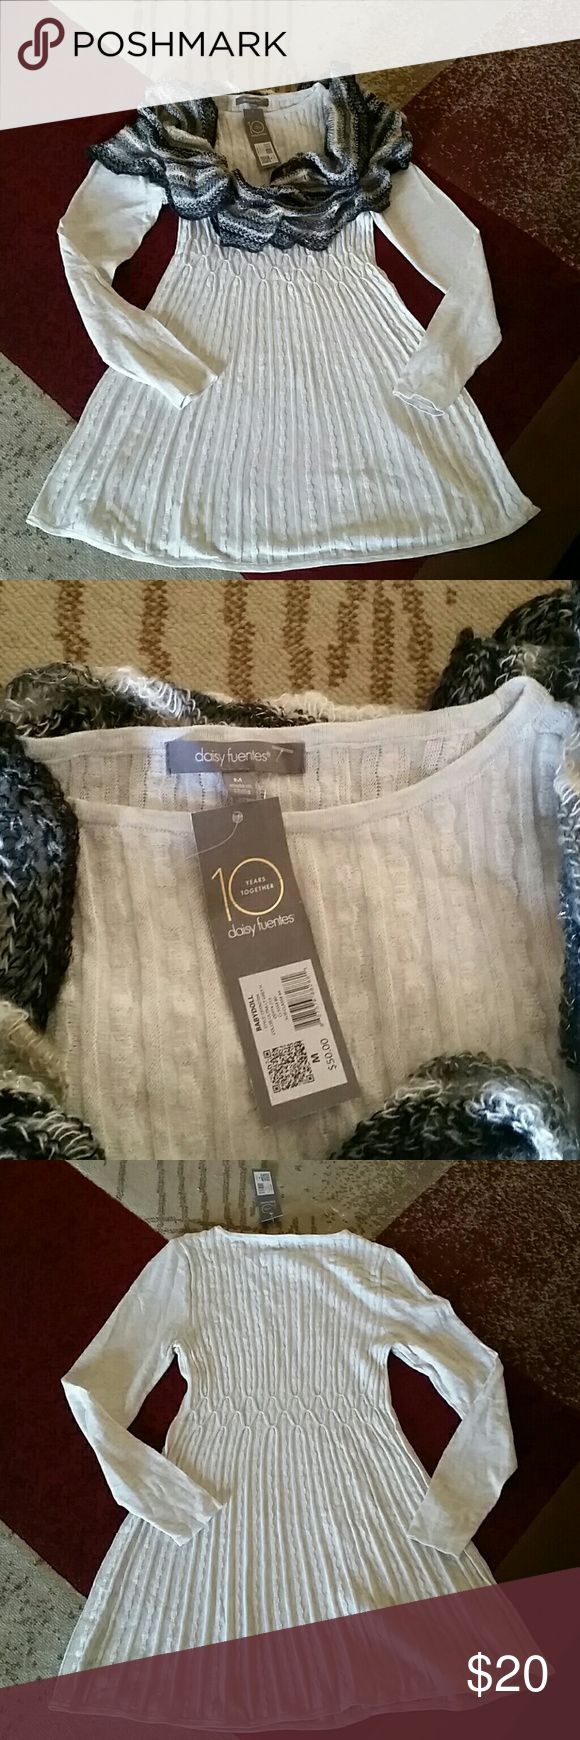 Daisy Fuentes baby doll dress new with tags. Brand new Daisy Fuentes babydoll dress, long sleeve,  ultra light grey color. Looks to me like cream and specks of gray. Never worn.  Infinity scarf also for sale. Daisy Fuentes Dresses Long Sleeve